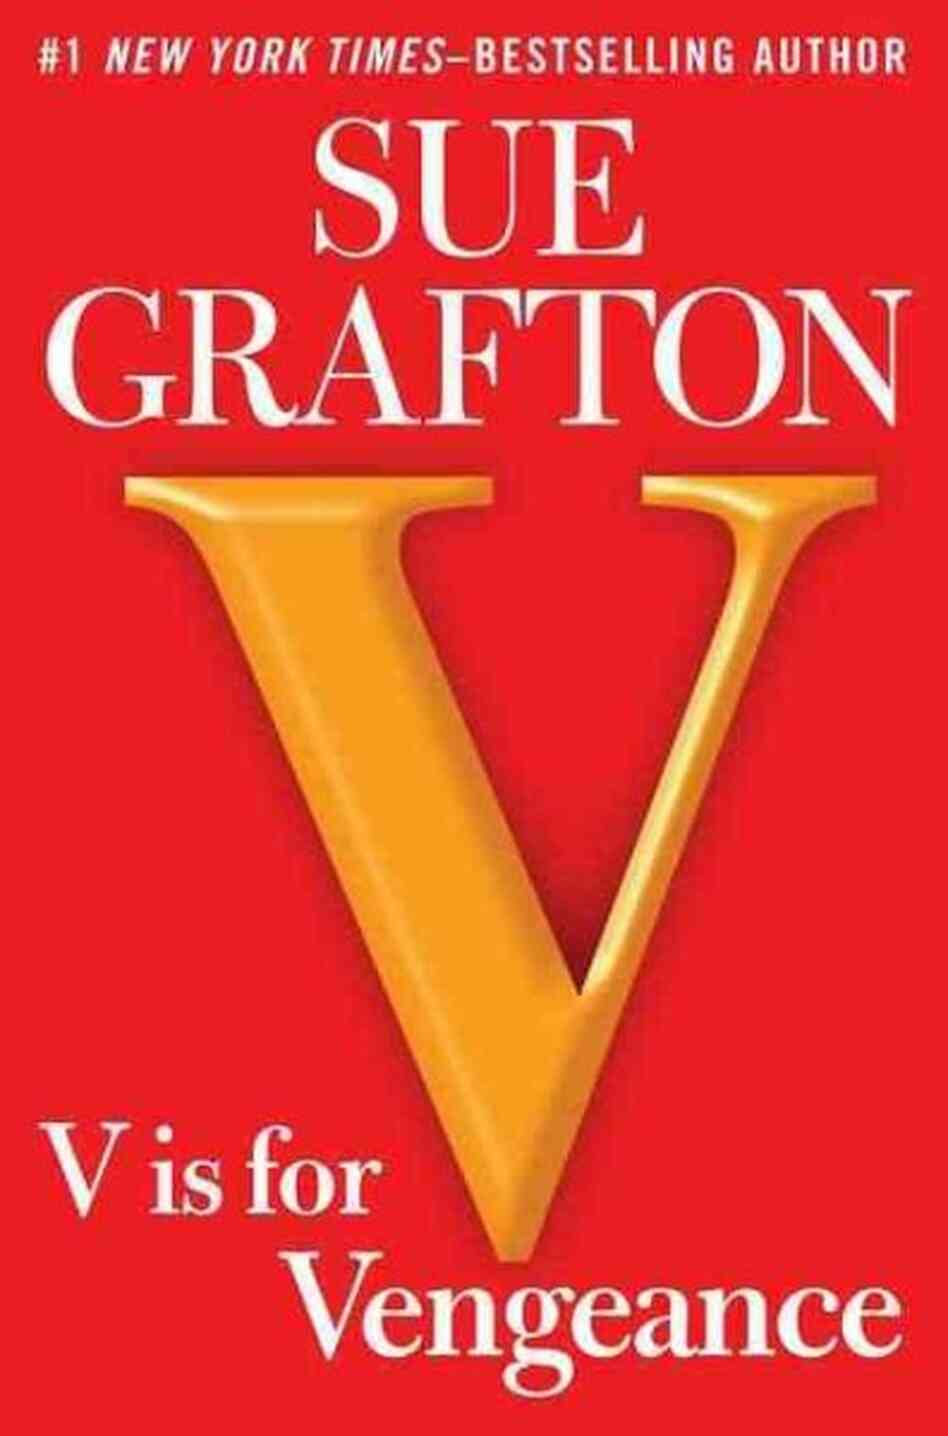 sue grafton abc mystery series - photo#8